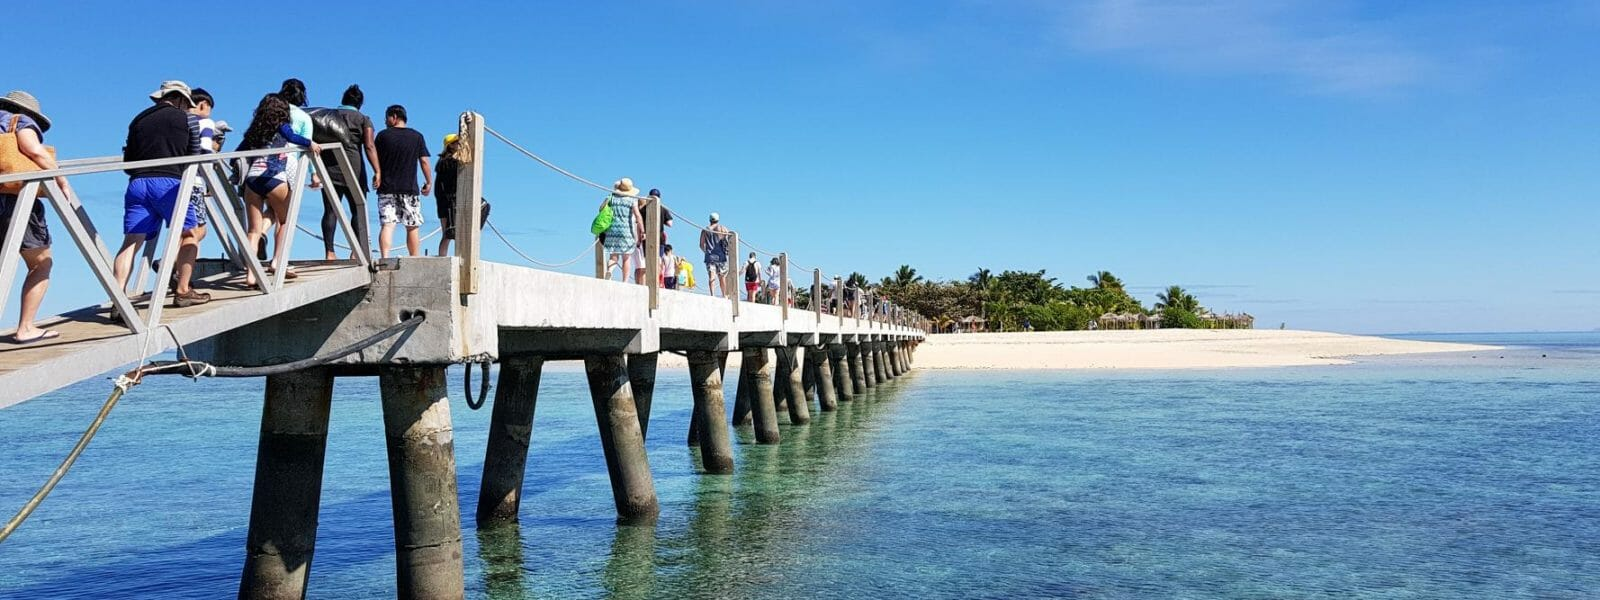 Tivua Island day tour in Fiji